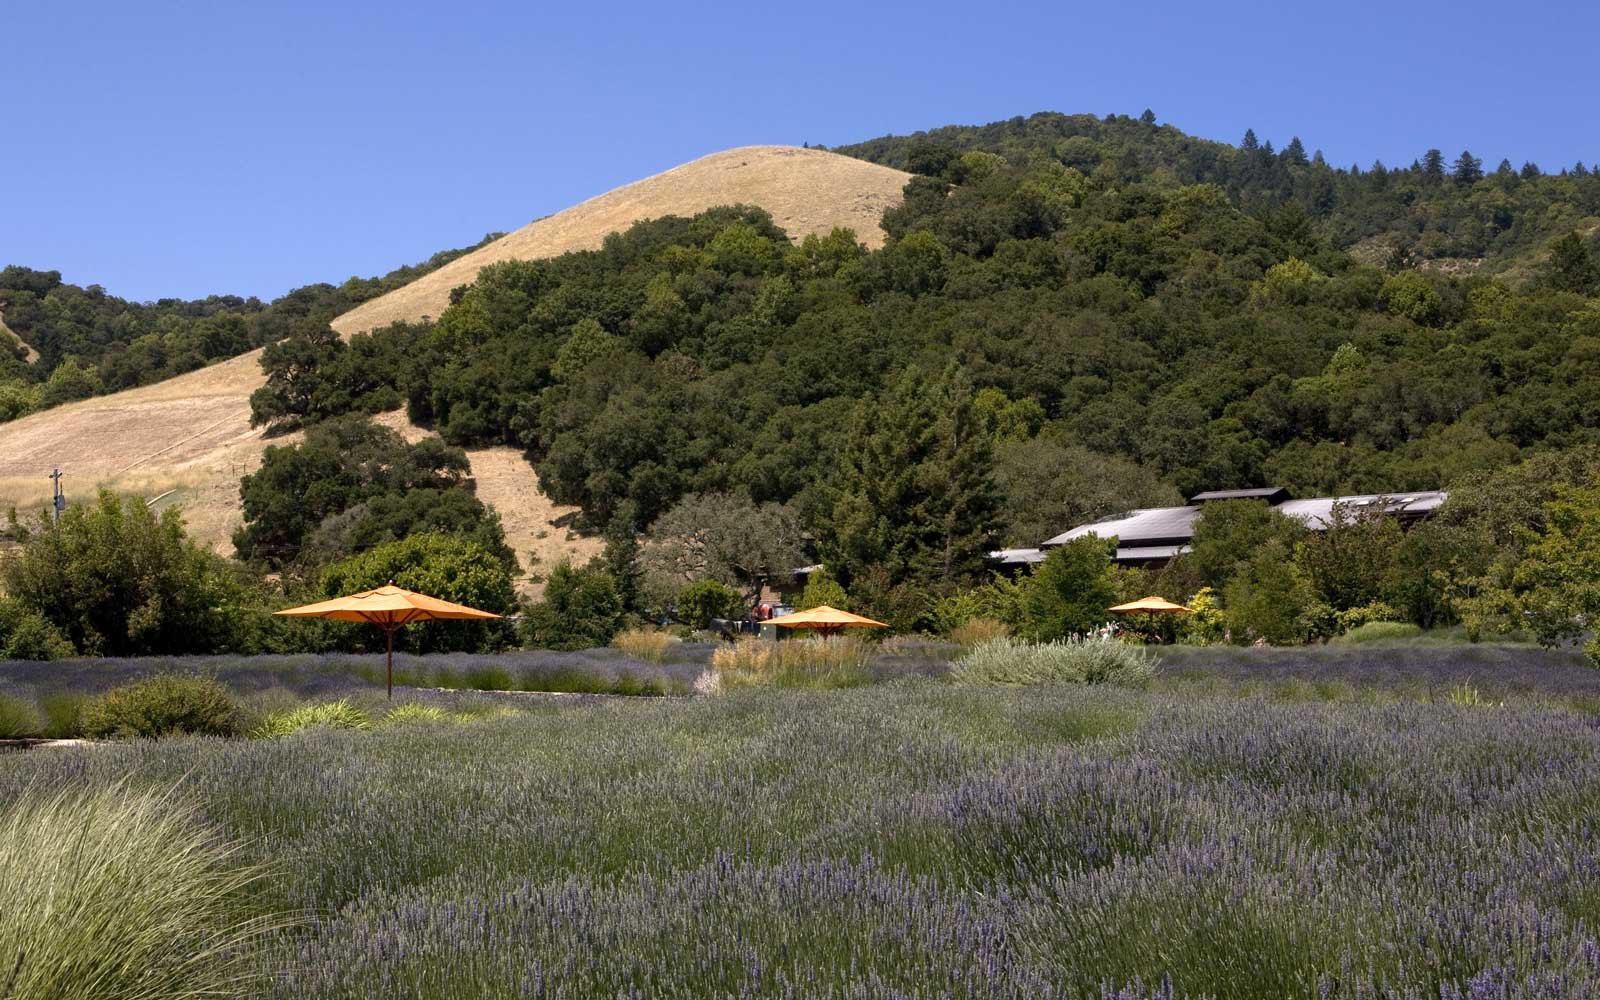 The lavendar garden at Bennett Valley's Matanzas Creek Winery